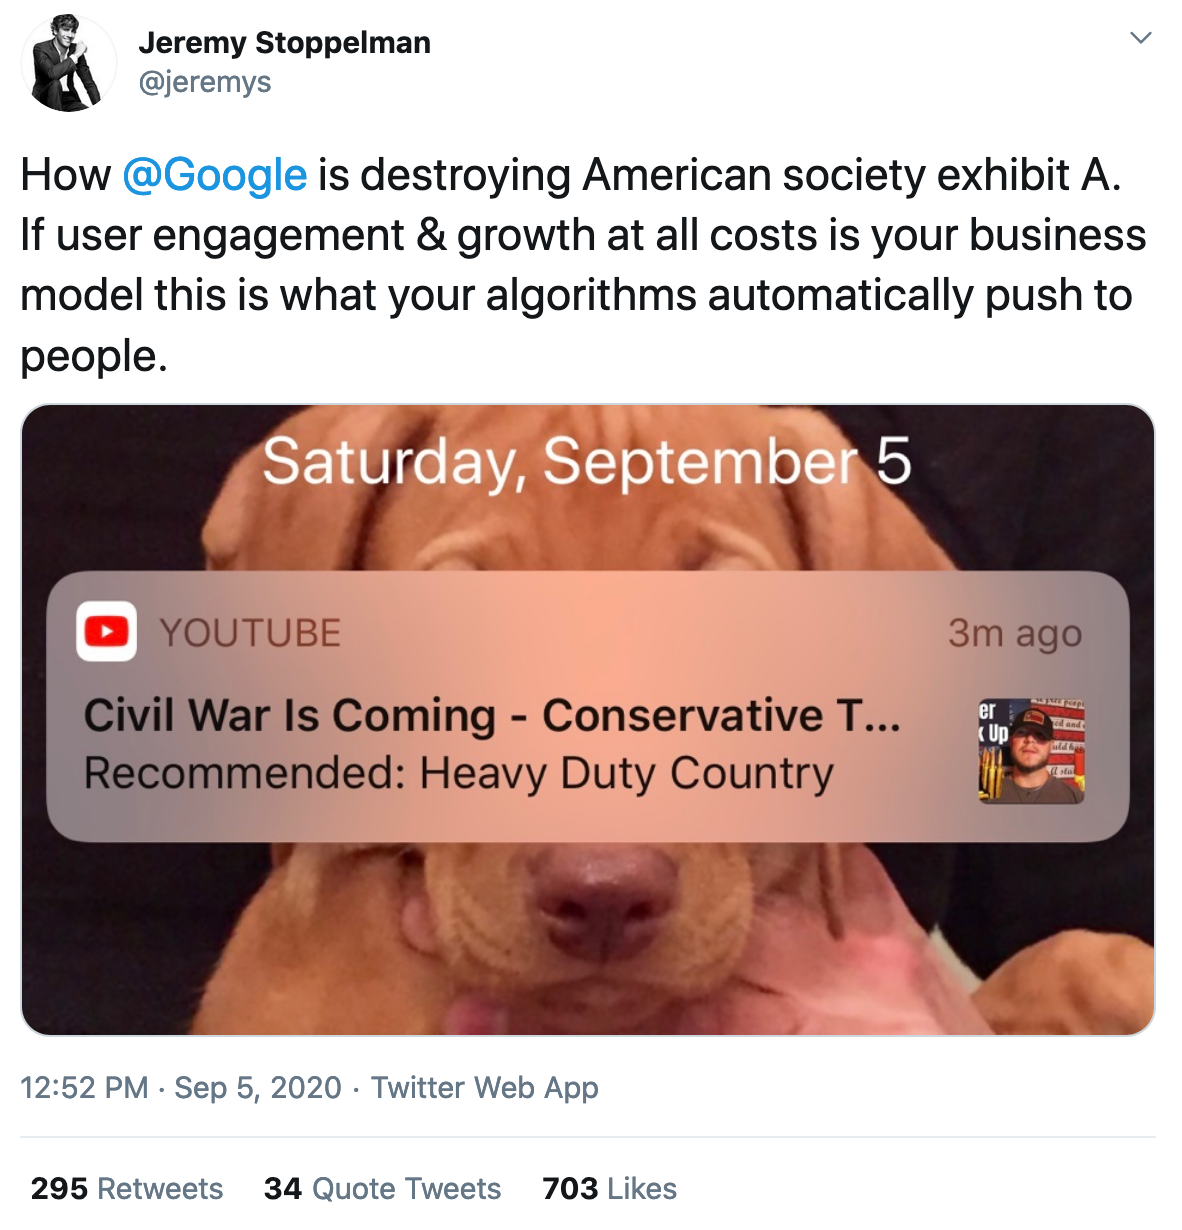 @jeremys on Twitter, How Google is destroying American society exhibit A.